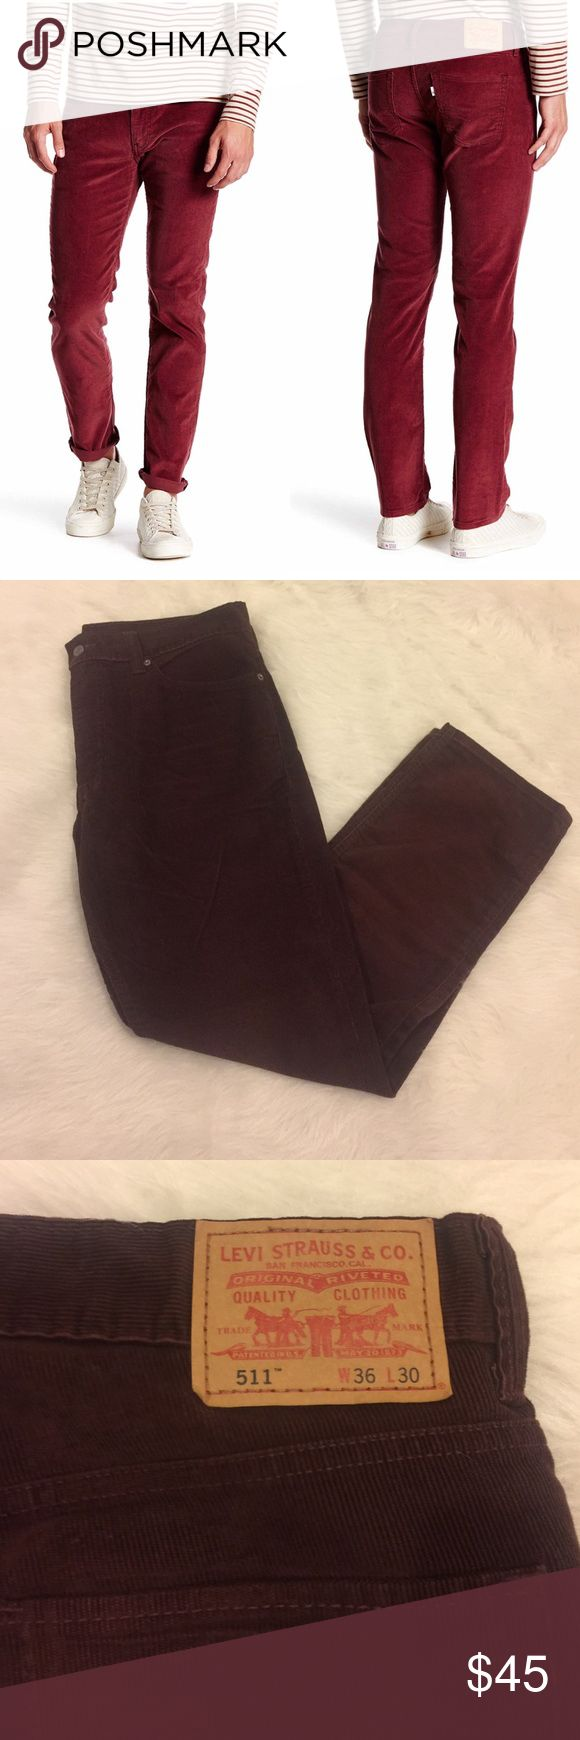 🚨LAST CHANCE🚨 Levi's Men's Corduroy 511 Pants Only worn once, in great condition. Not the same color at the stock photo these are more of a deep maroon/almost brown color. Very soft! Waist: 36/Length: 30. 67% Cotton / 33% Polyester. Levi's Pants Corduroy